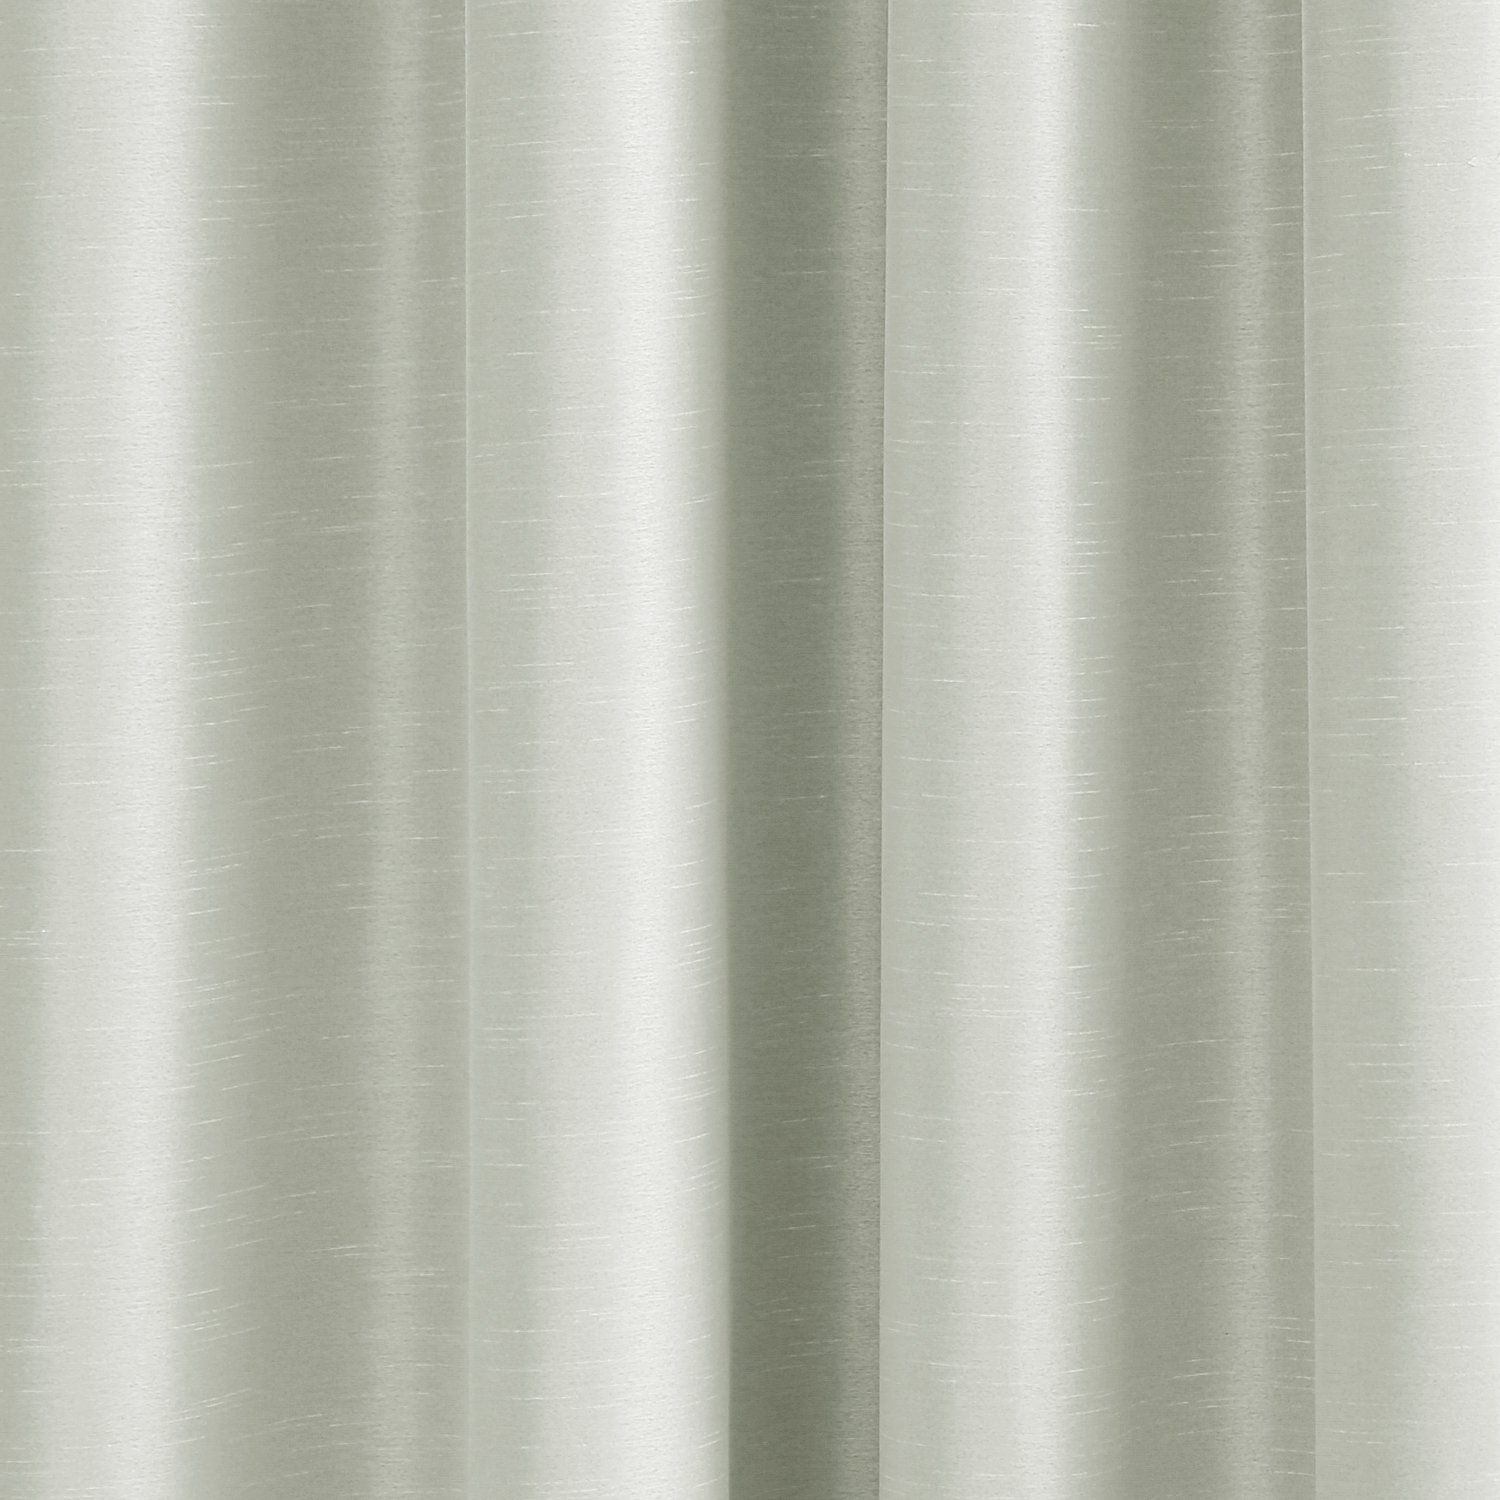 Deconovo Double Layers Faux Dupioni Silk Blackout Curtains Thermal Insulated Grommet Blackout Lining Panels for Living Room 52W x 95L Inch Cream 2 Panels